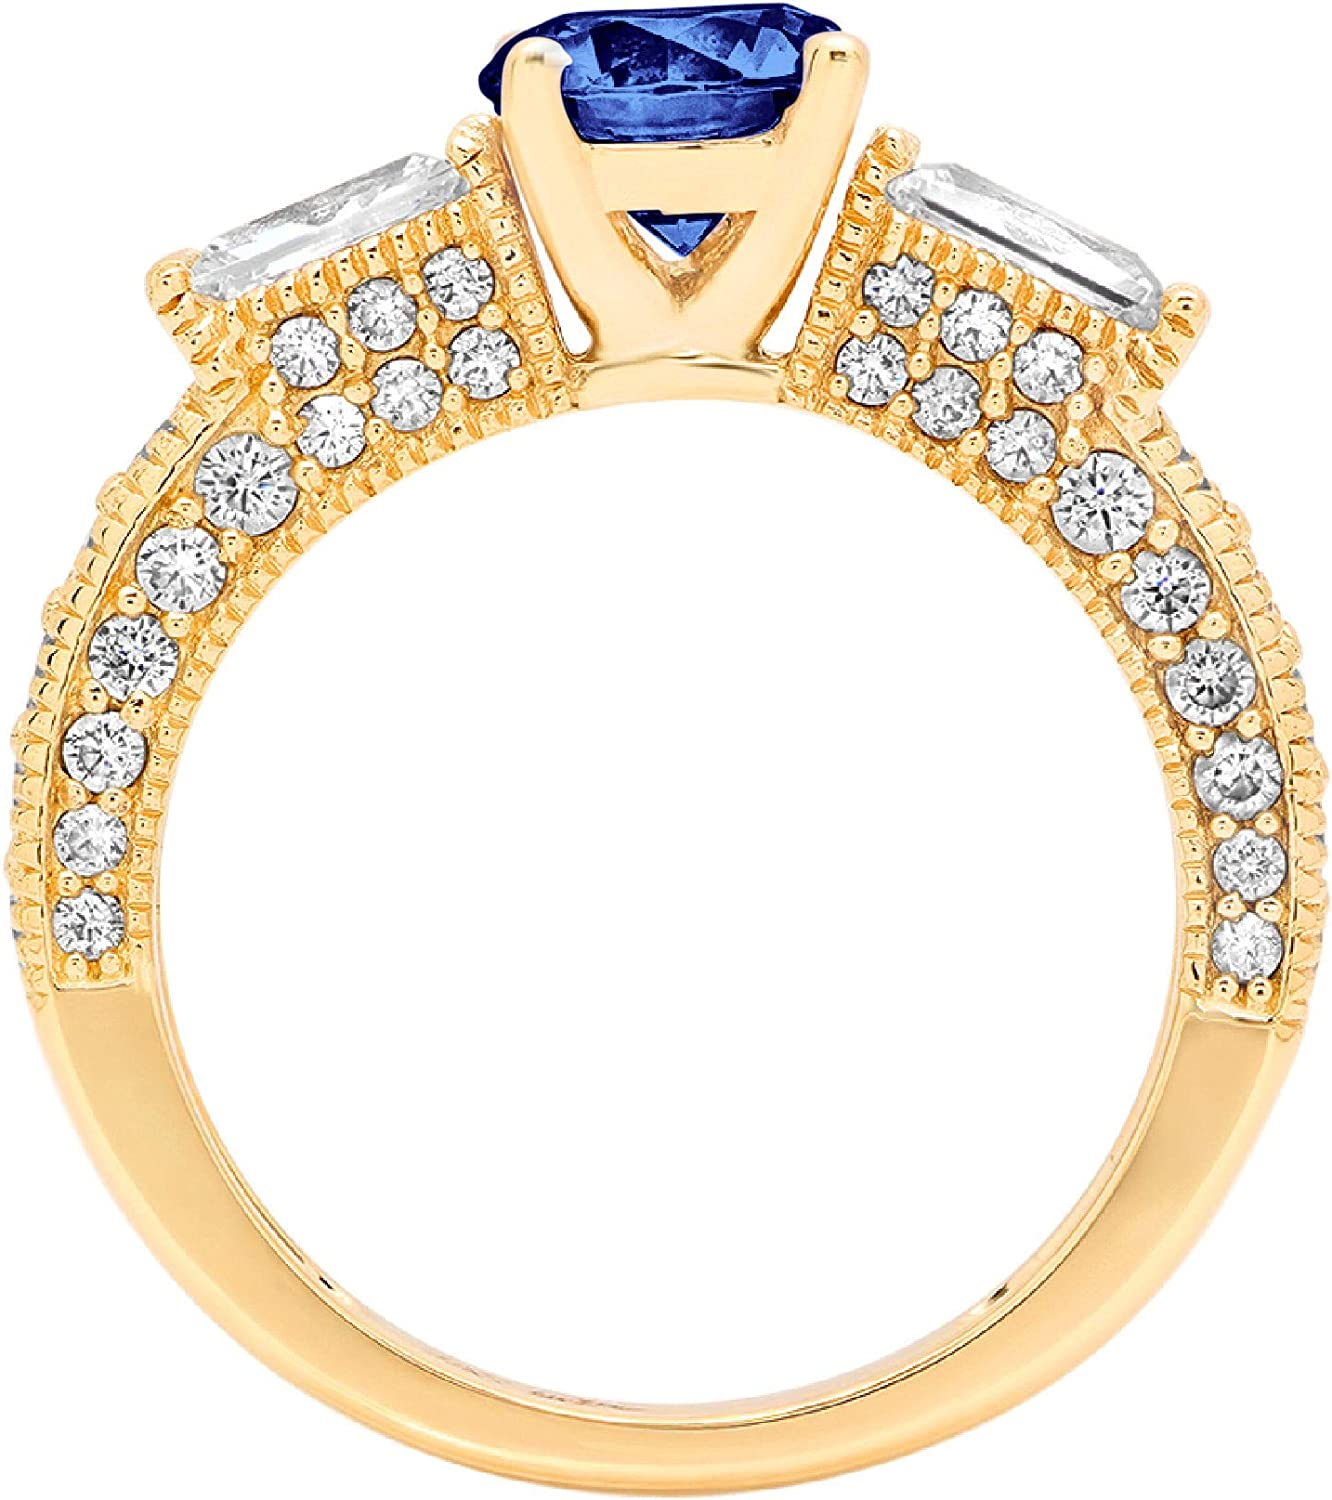 2.33 ct Round Baguette Cut 3 stone Solitaire Flawless Ideal VVS1 Simulated Tanzanite Ideal Engagement Promise Statement Anniversary Bridal Wedding with accent Designer Ring 14k Yellow Gold